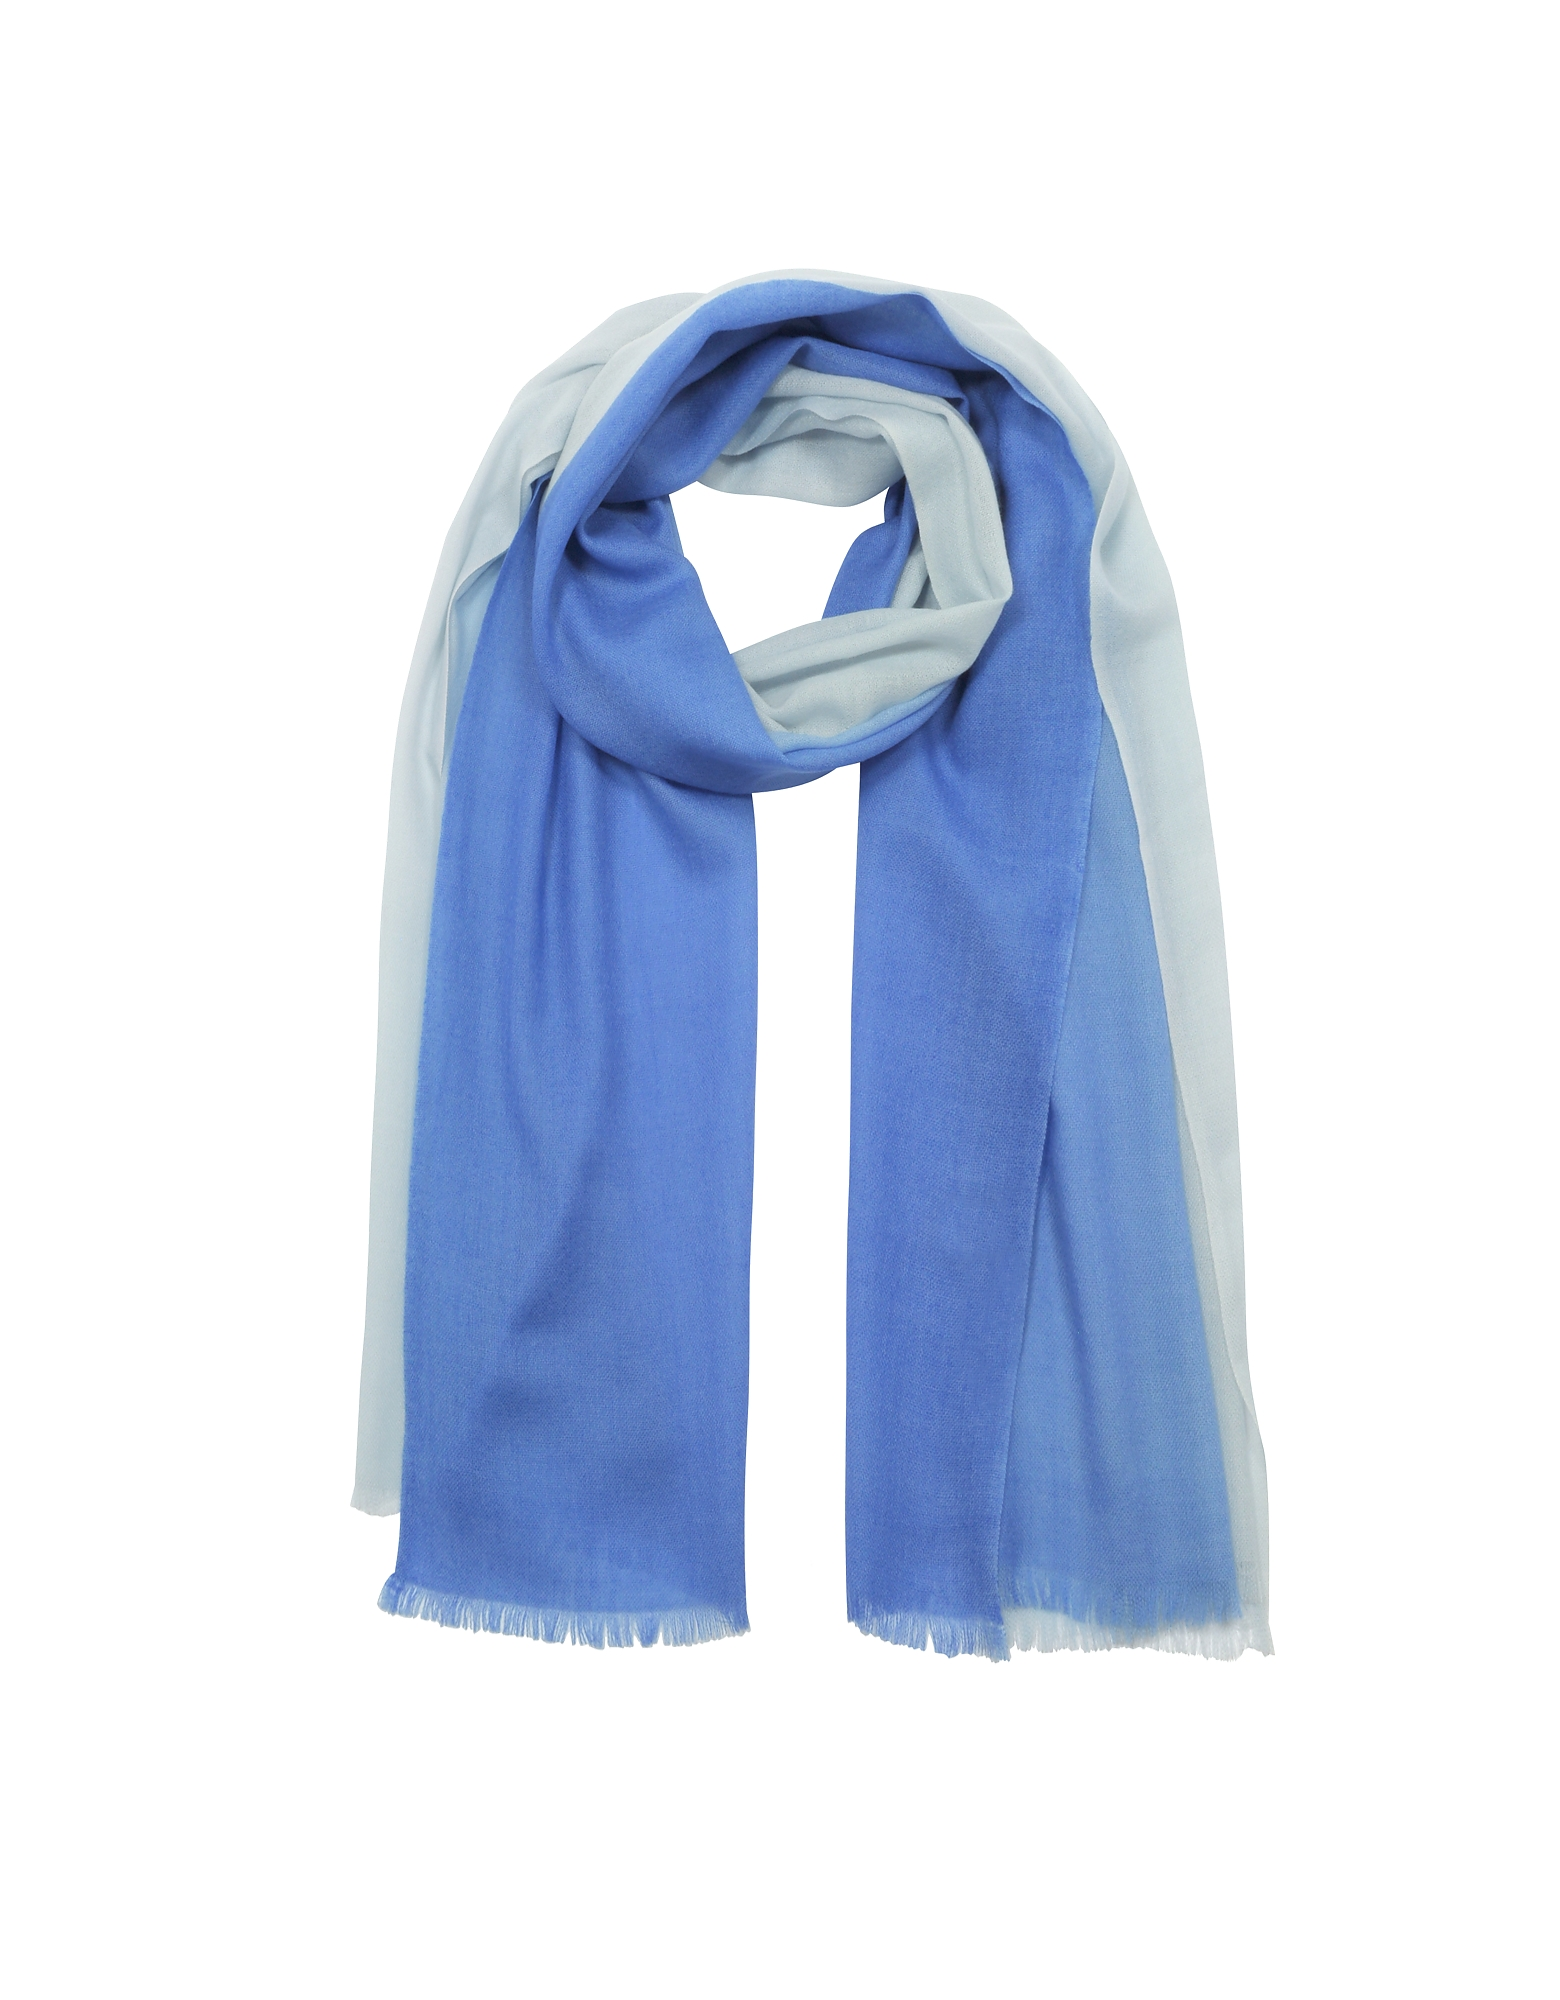 Gradient Wool & Cashmere Pashmina